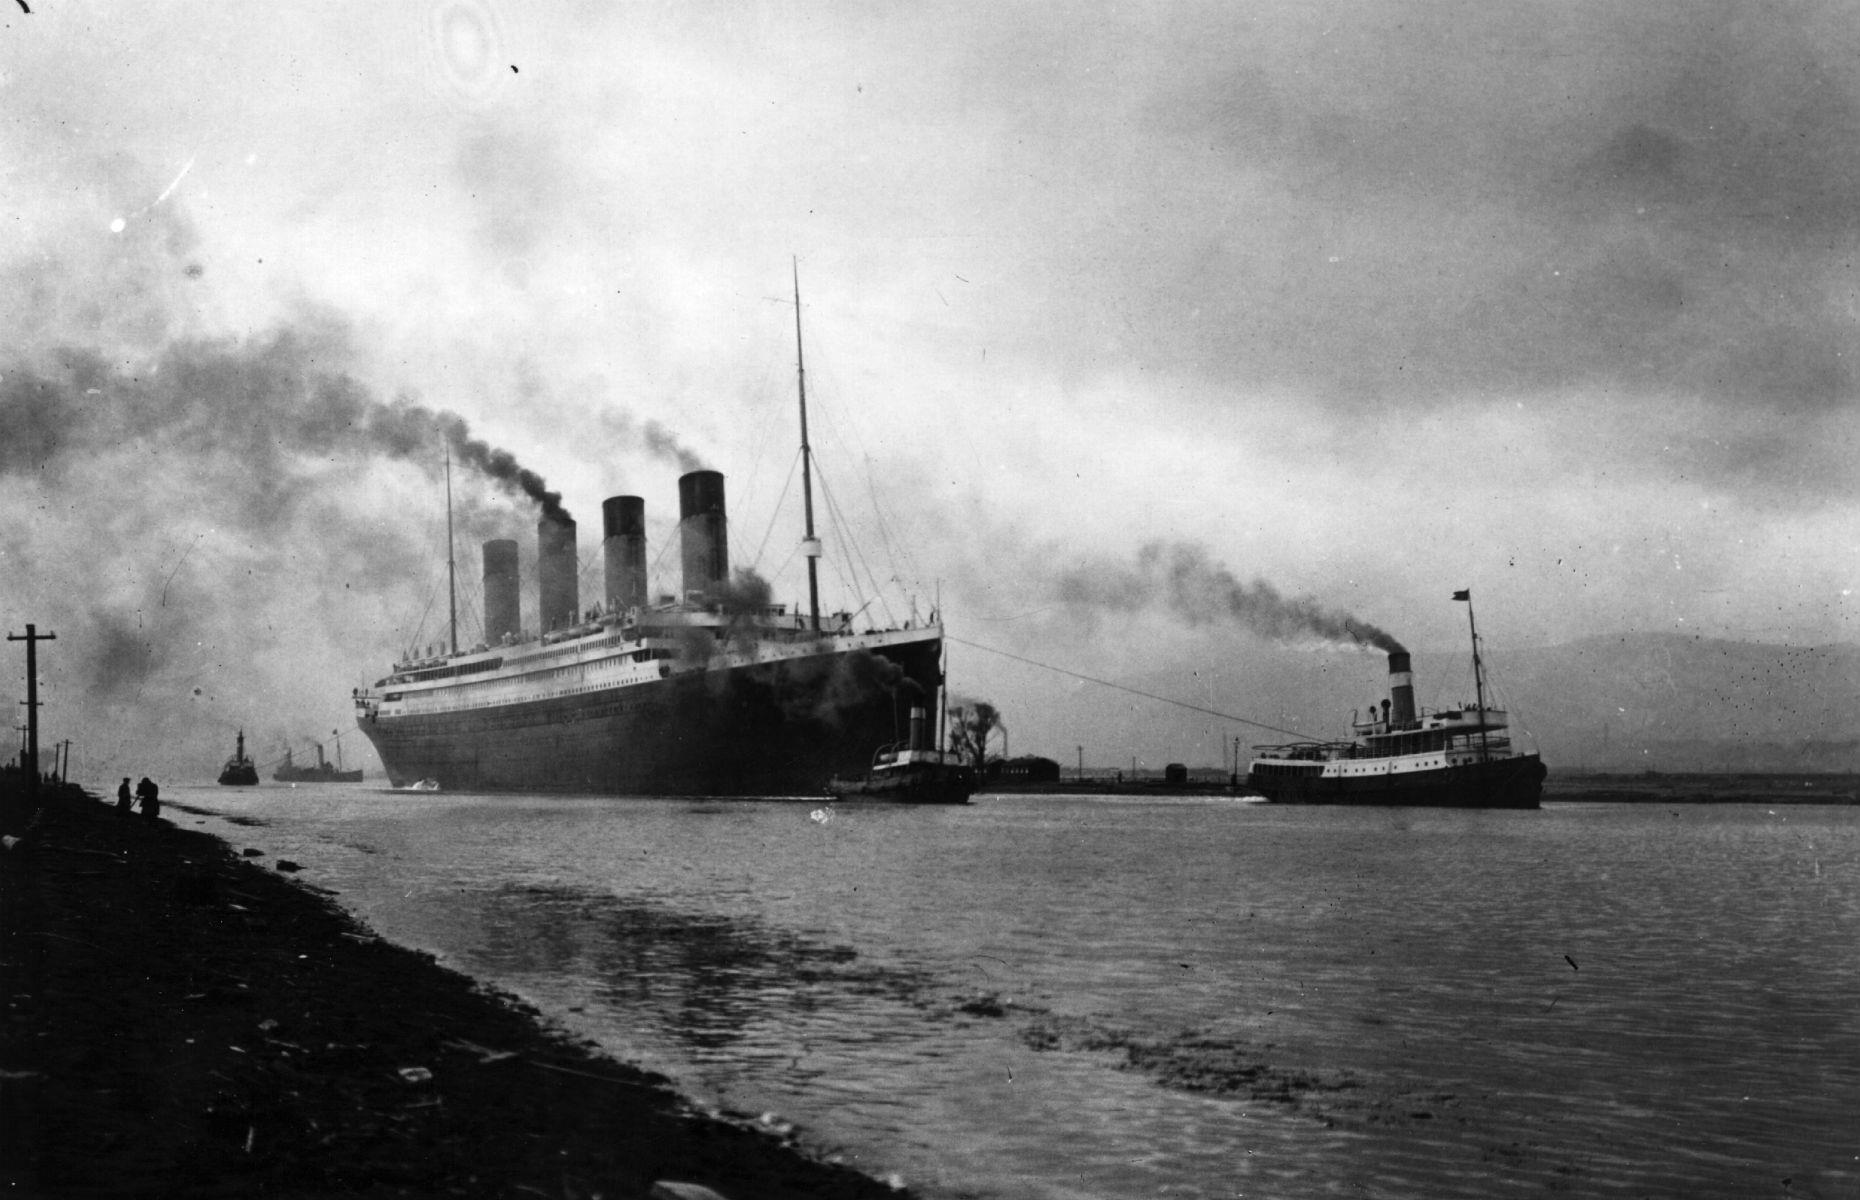 Slide 5 of 46: Despite many setbacks the RMS Titanic sailed on her maiden voyage on10 April 1912 from Southampton. The Titanic made two stops before heading out to the Atlantic Ocean, calling at Cherbourg in northern France and Queenstown (now called Cobh) in County Cork, Ireland.